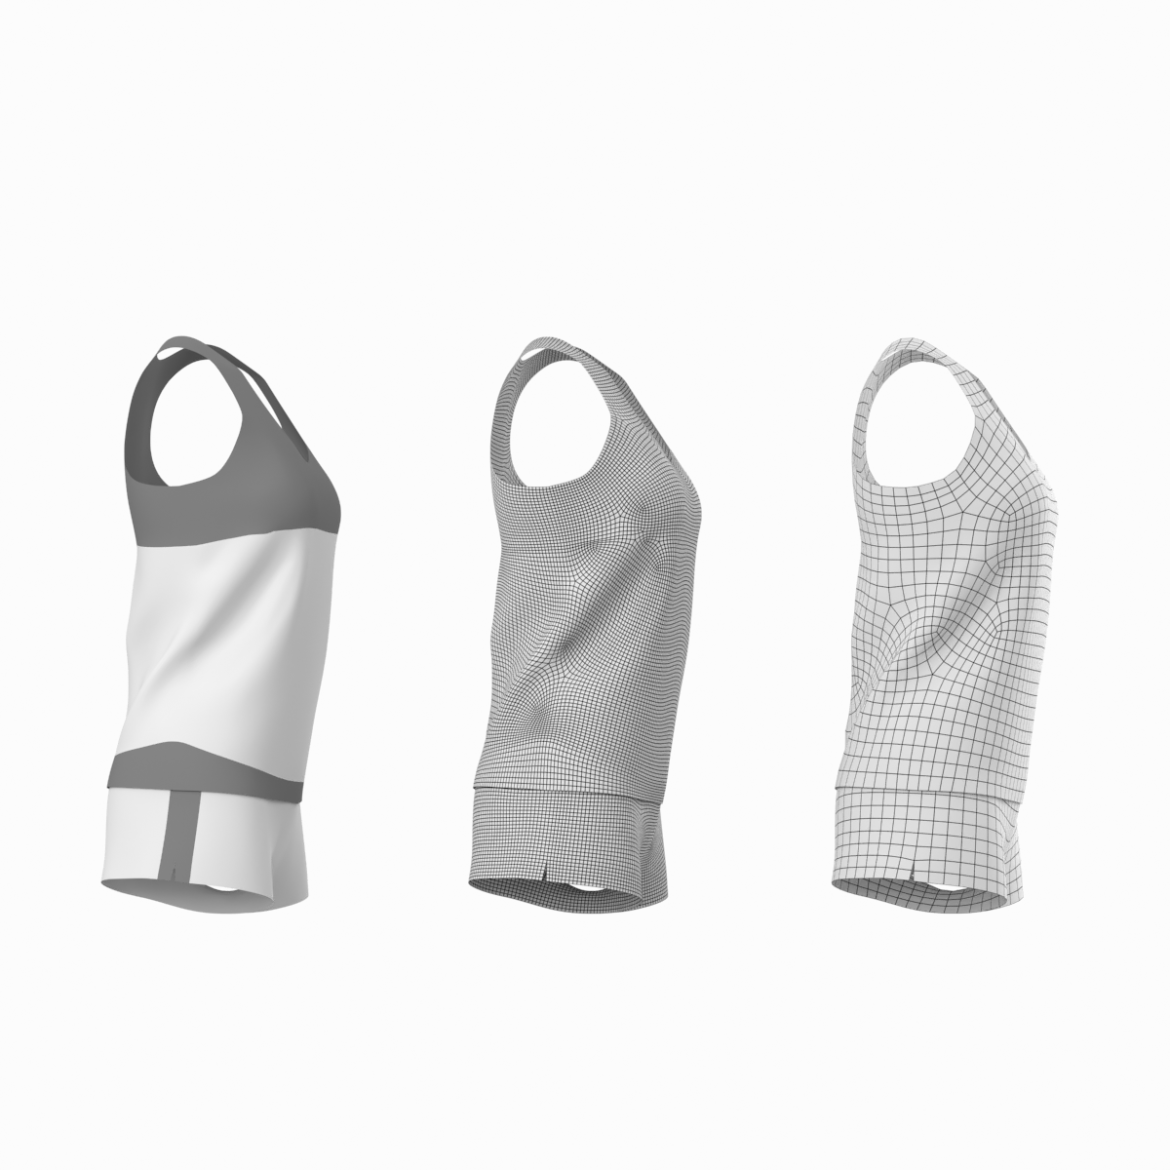 woman sportswear 03 base mesh design kit 3d model 3ds max fbx blend c4d dae ma mb  obj ztl 321870